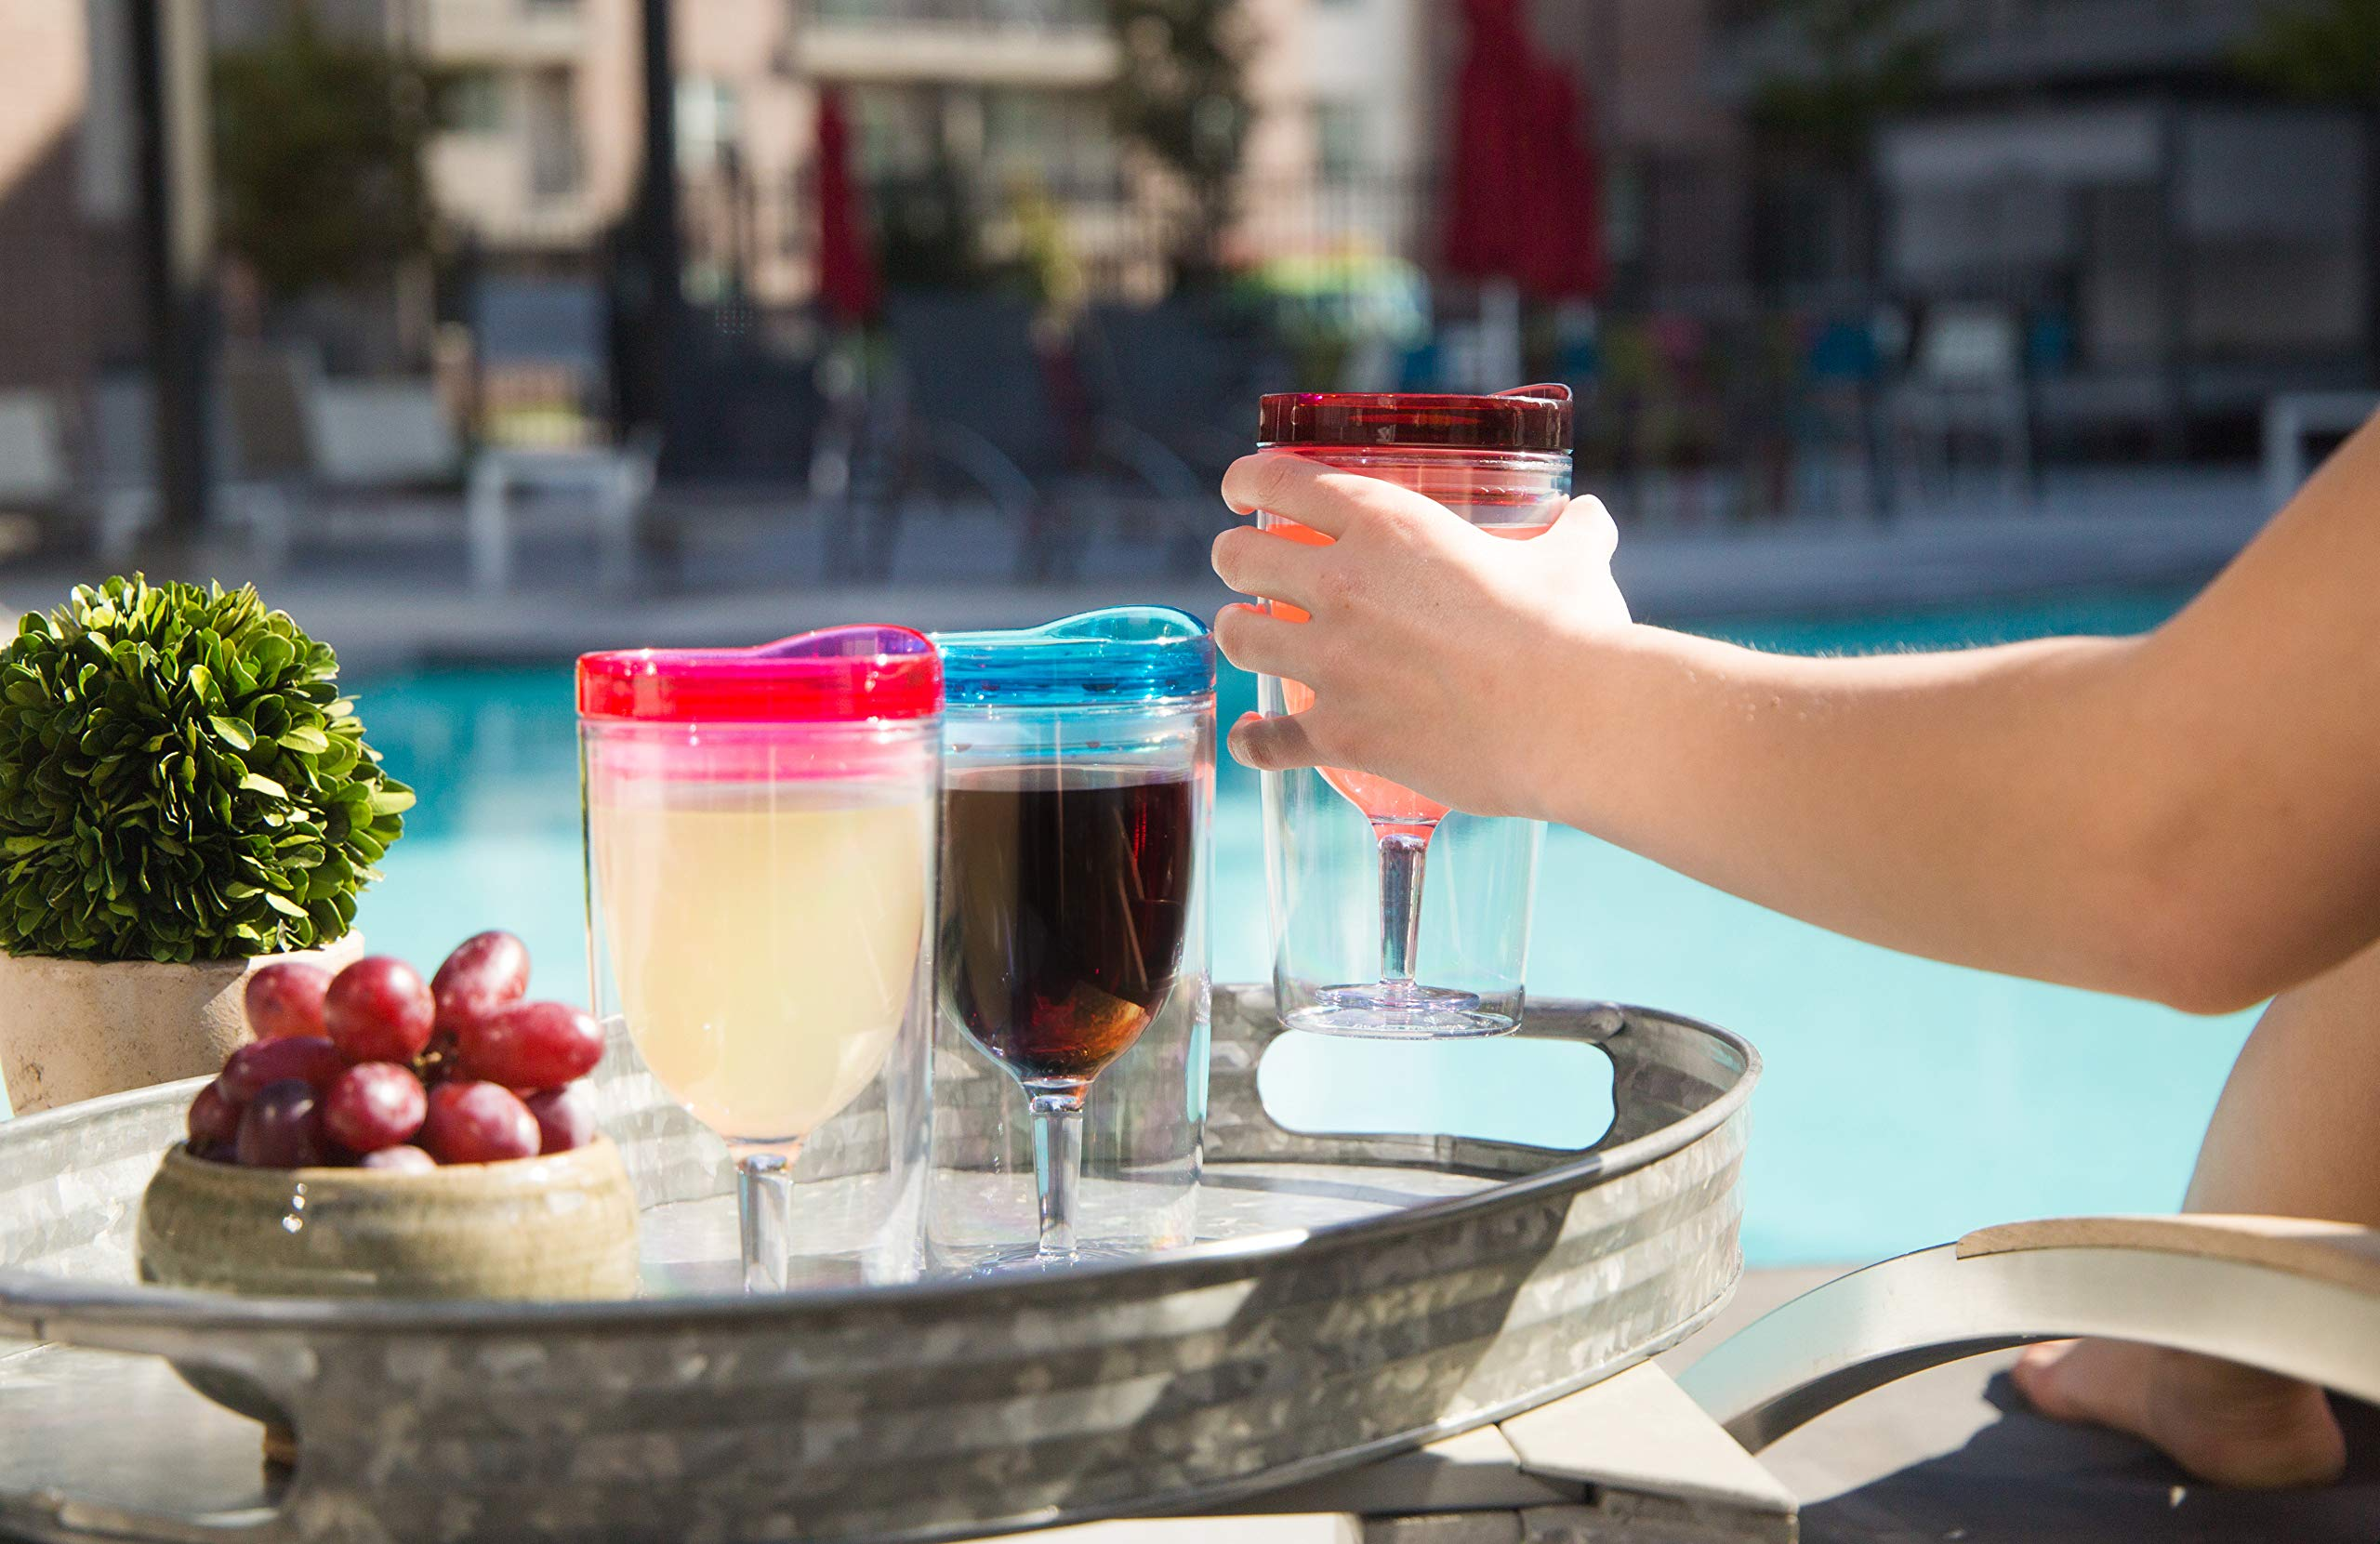 Insulated Wine Tumbler With Lid (SET OF 10) +BONUS Name Decals | Outdoor Acrylic Plastic Wine Glasses | 10oz Cup Tumblers in 10 Colors - Adult Sippy | Unbreakable Stemless Wine Glass by STRATA CUPS (Image #4)